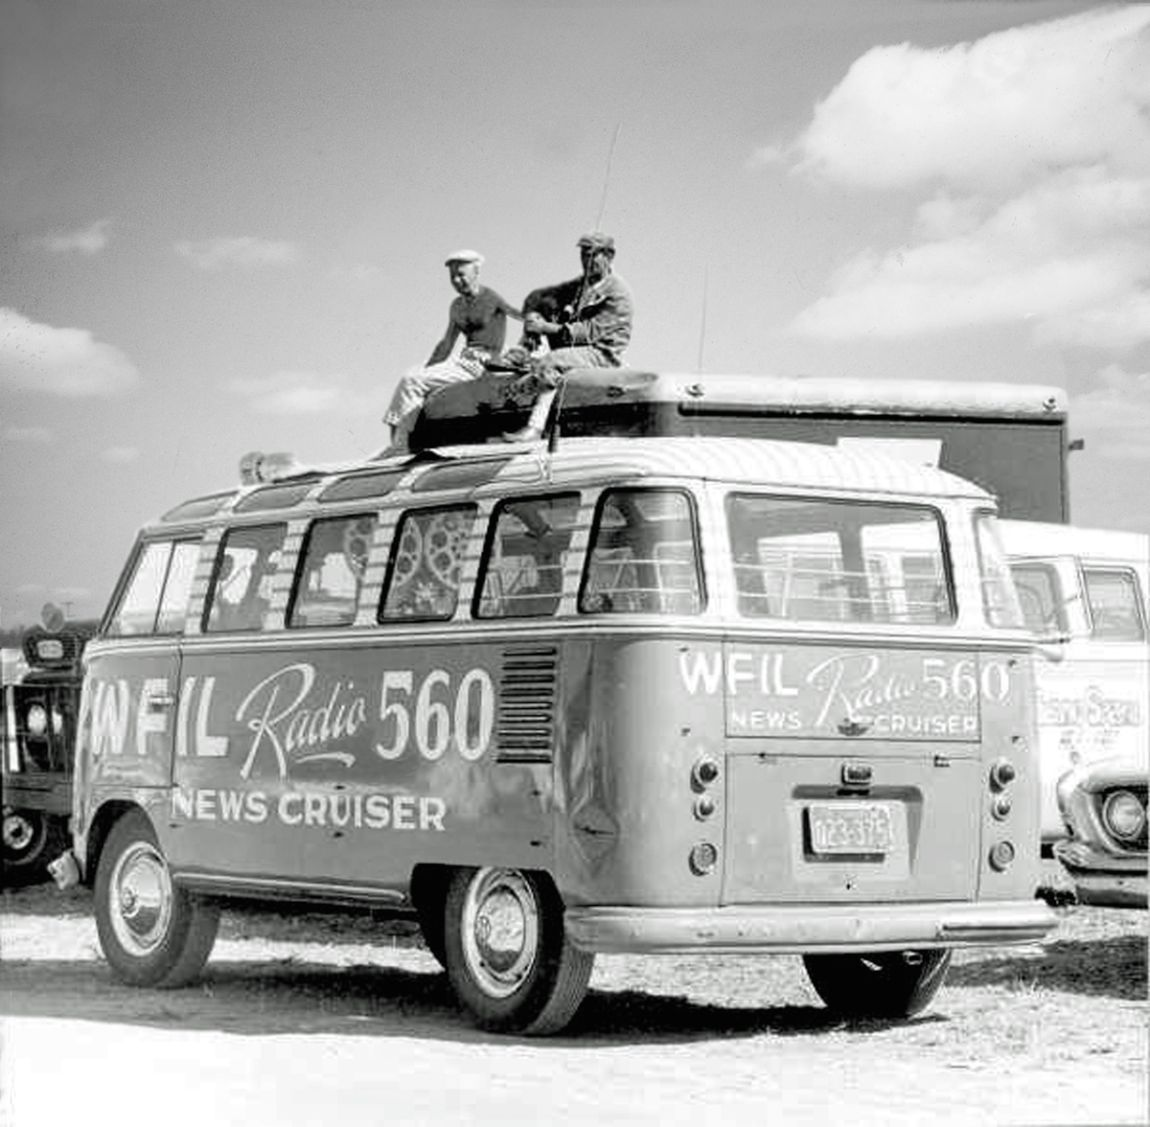 Radio coverage of the Sebring race was extensive in the '50s and early '60s.  Radio and TV legend Walter Cronkite broadcast the race several times.  Florida Archives photo.